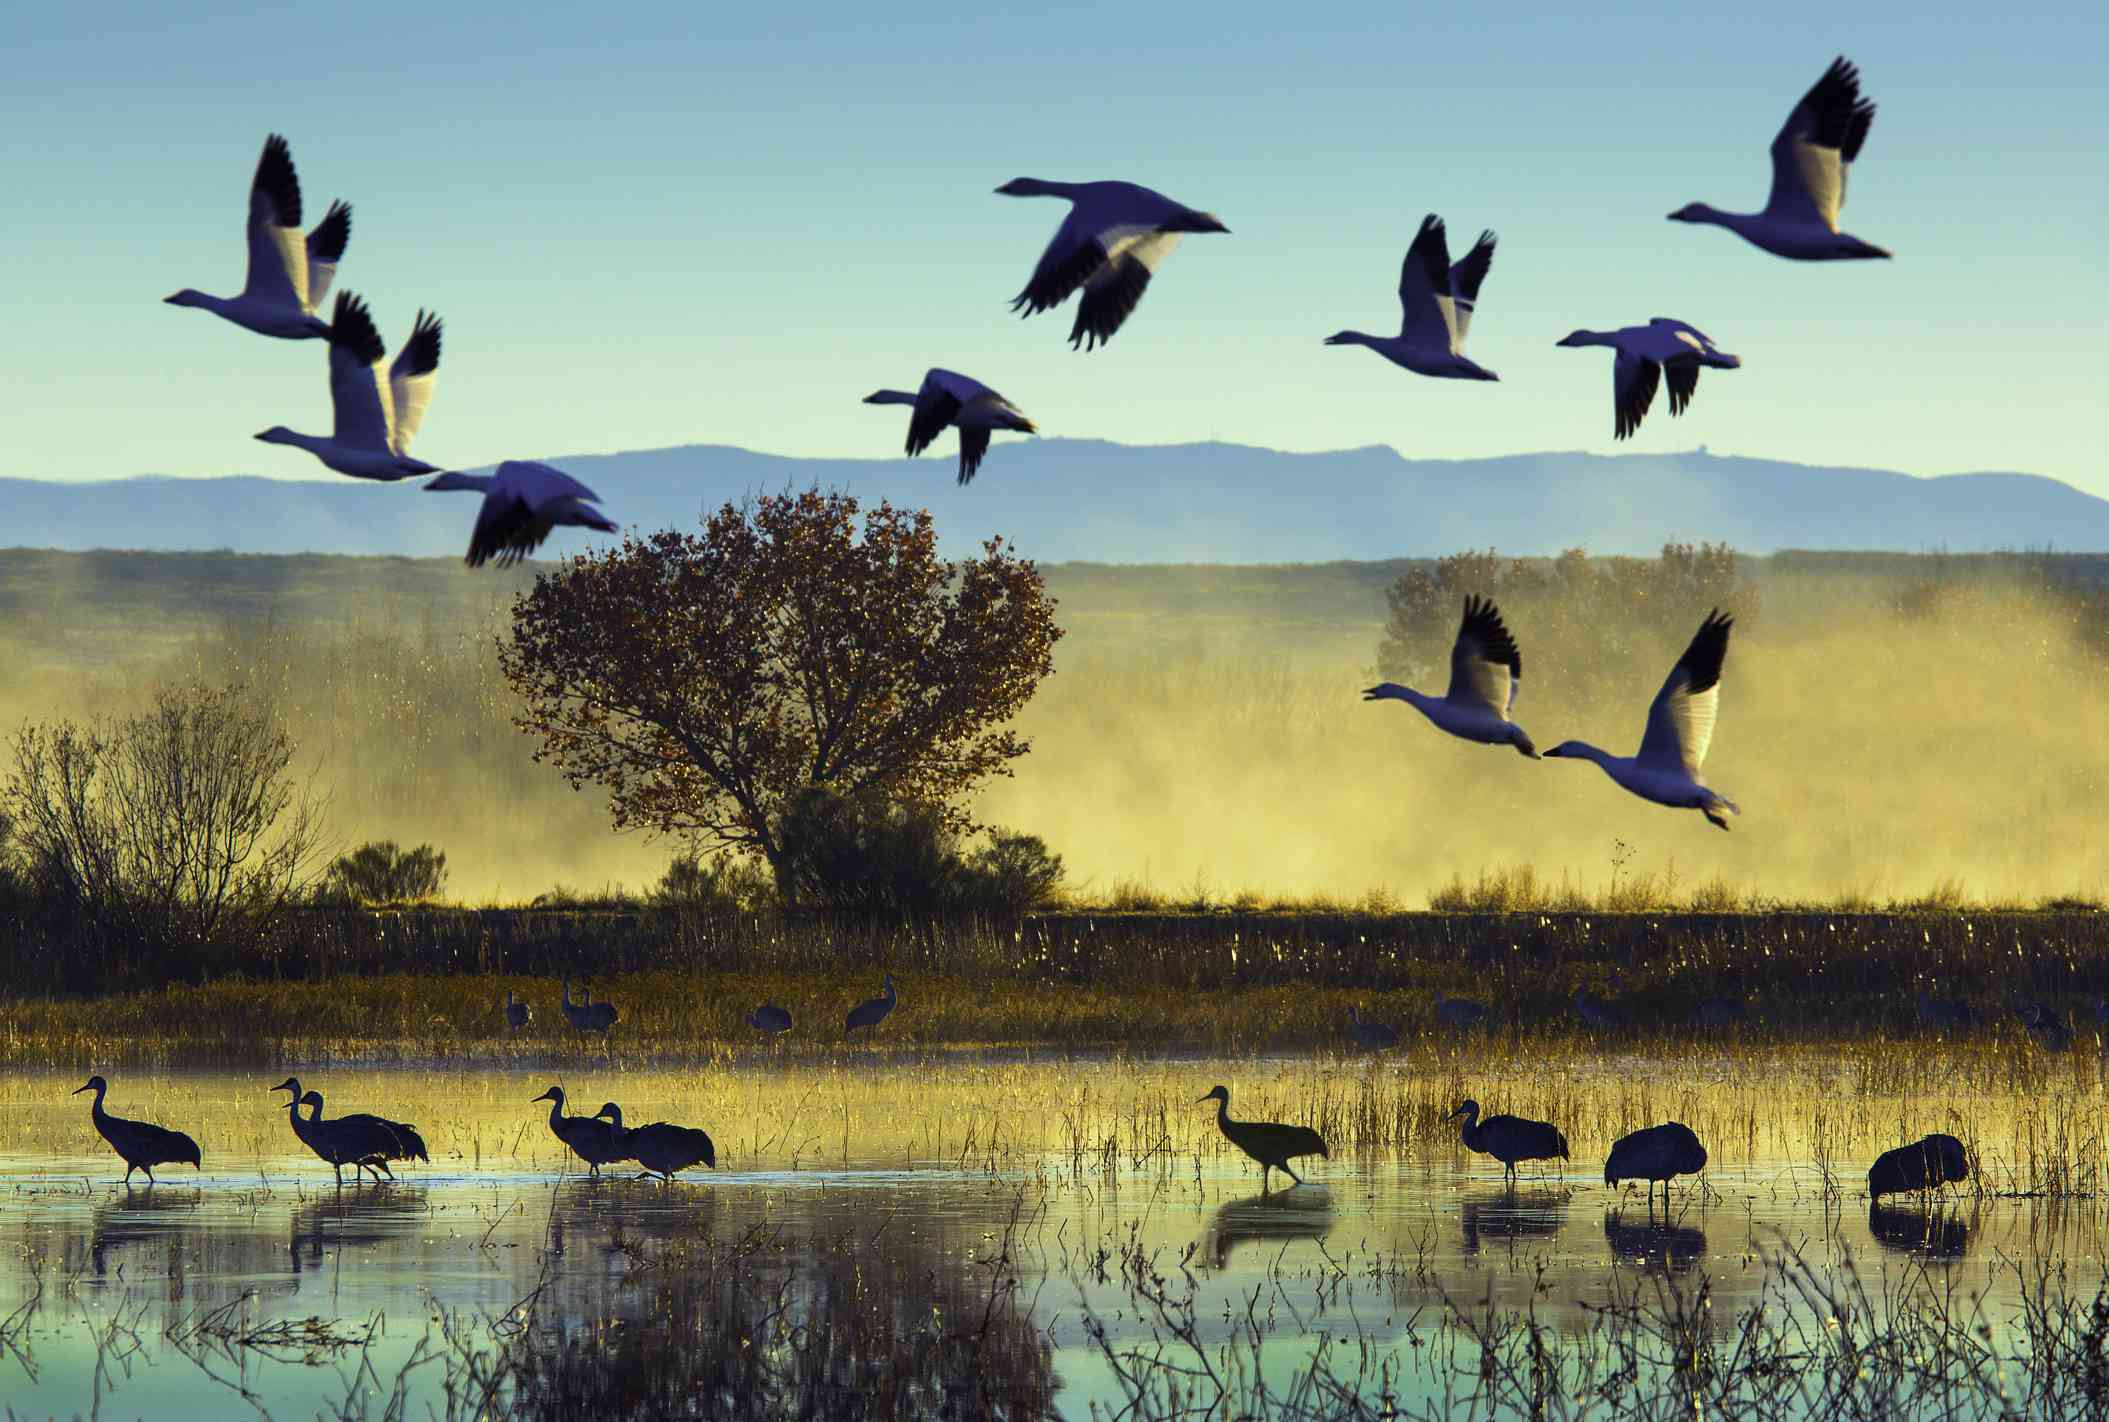 snow geese flying in a blue sky at sunrise above sandhill cranes standing in water amid small plants at Bosque del Apache